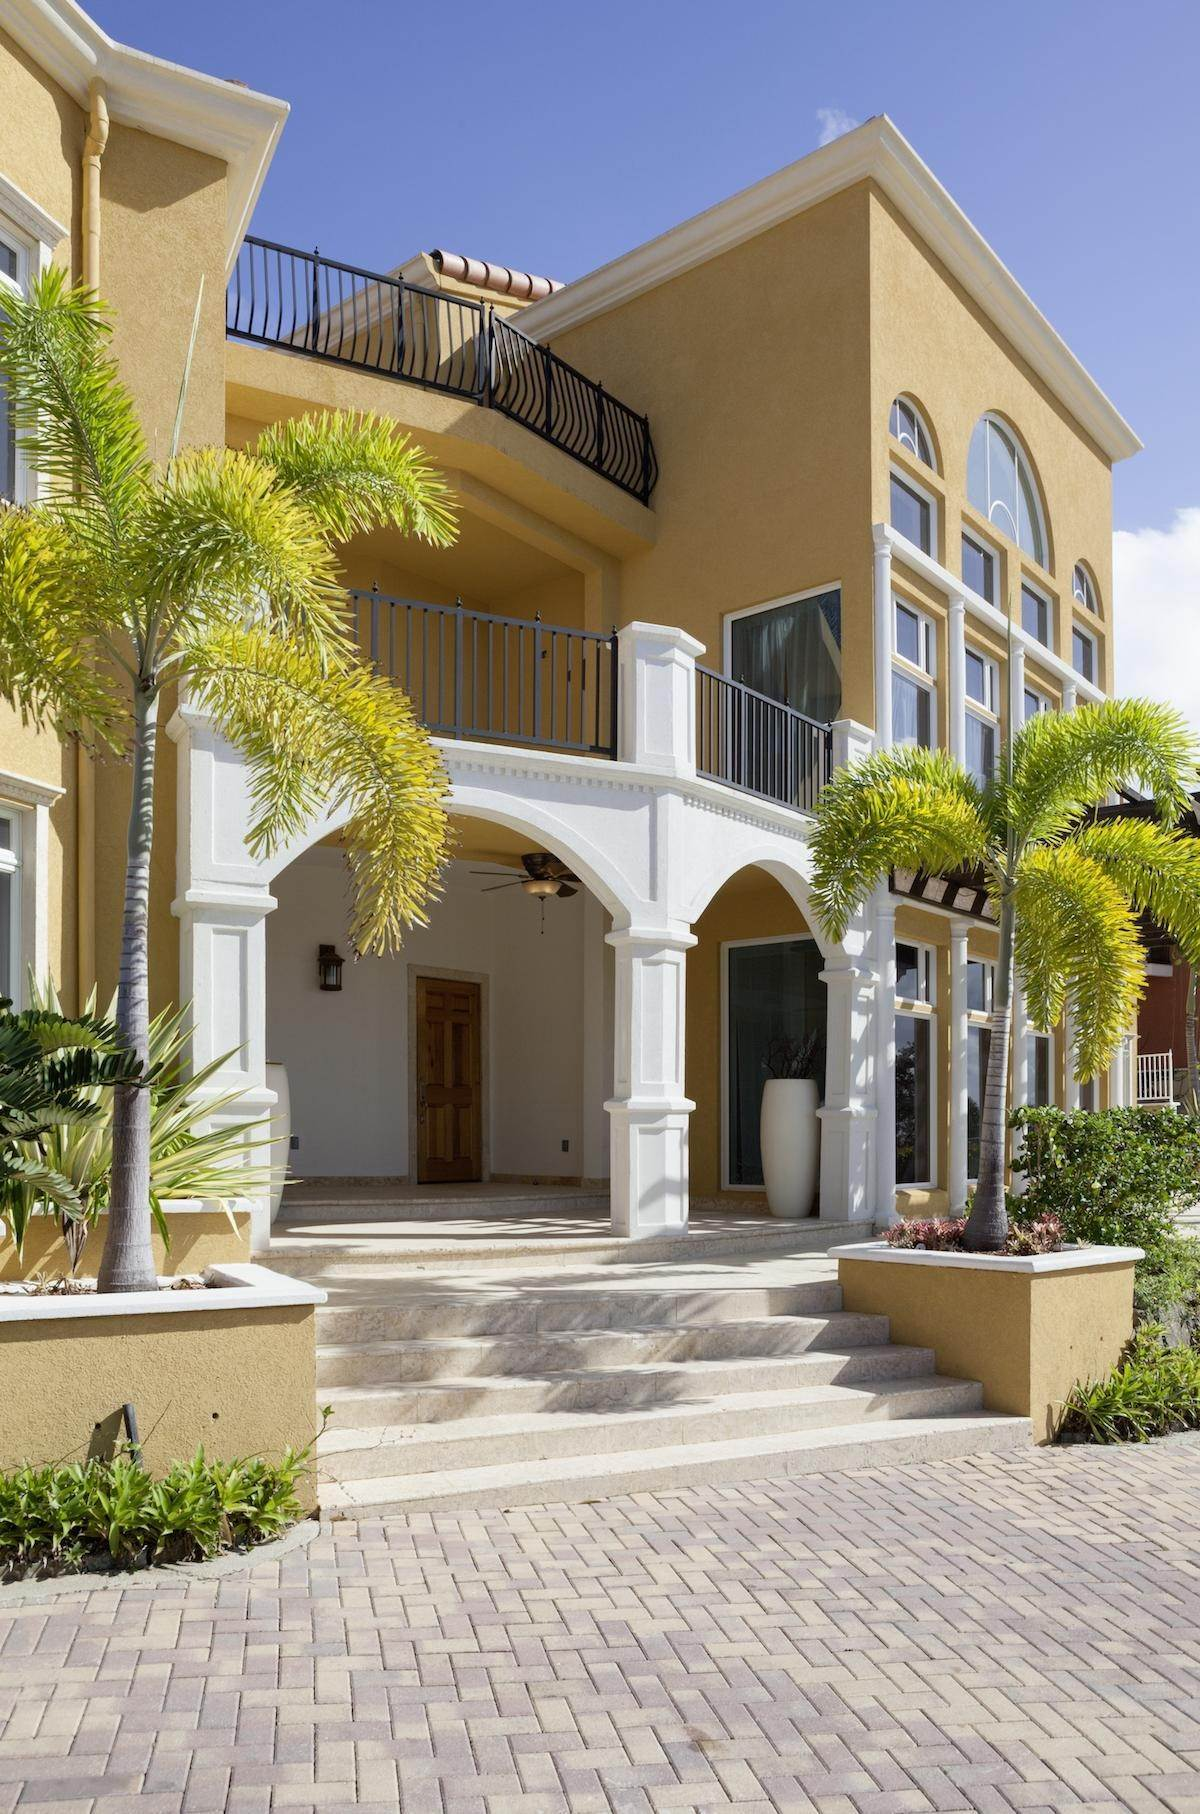 9. Condominium para Venda às 11 Enighed Cruz Bay St John, Virgin Islands,00830 U. S. Ilhas Virgens